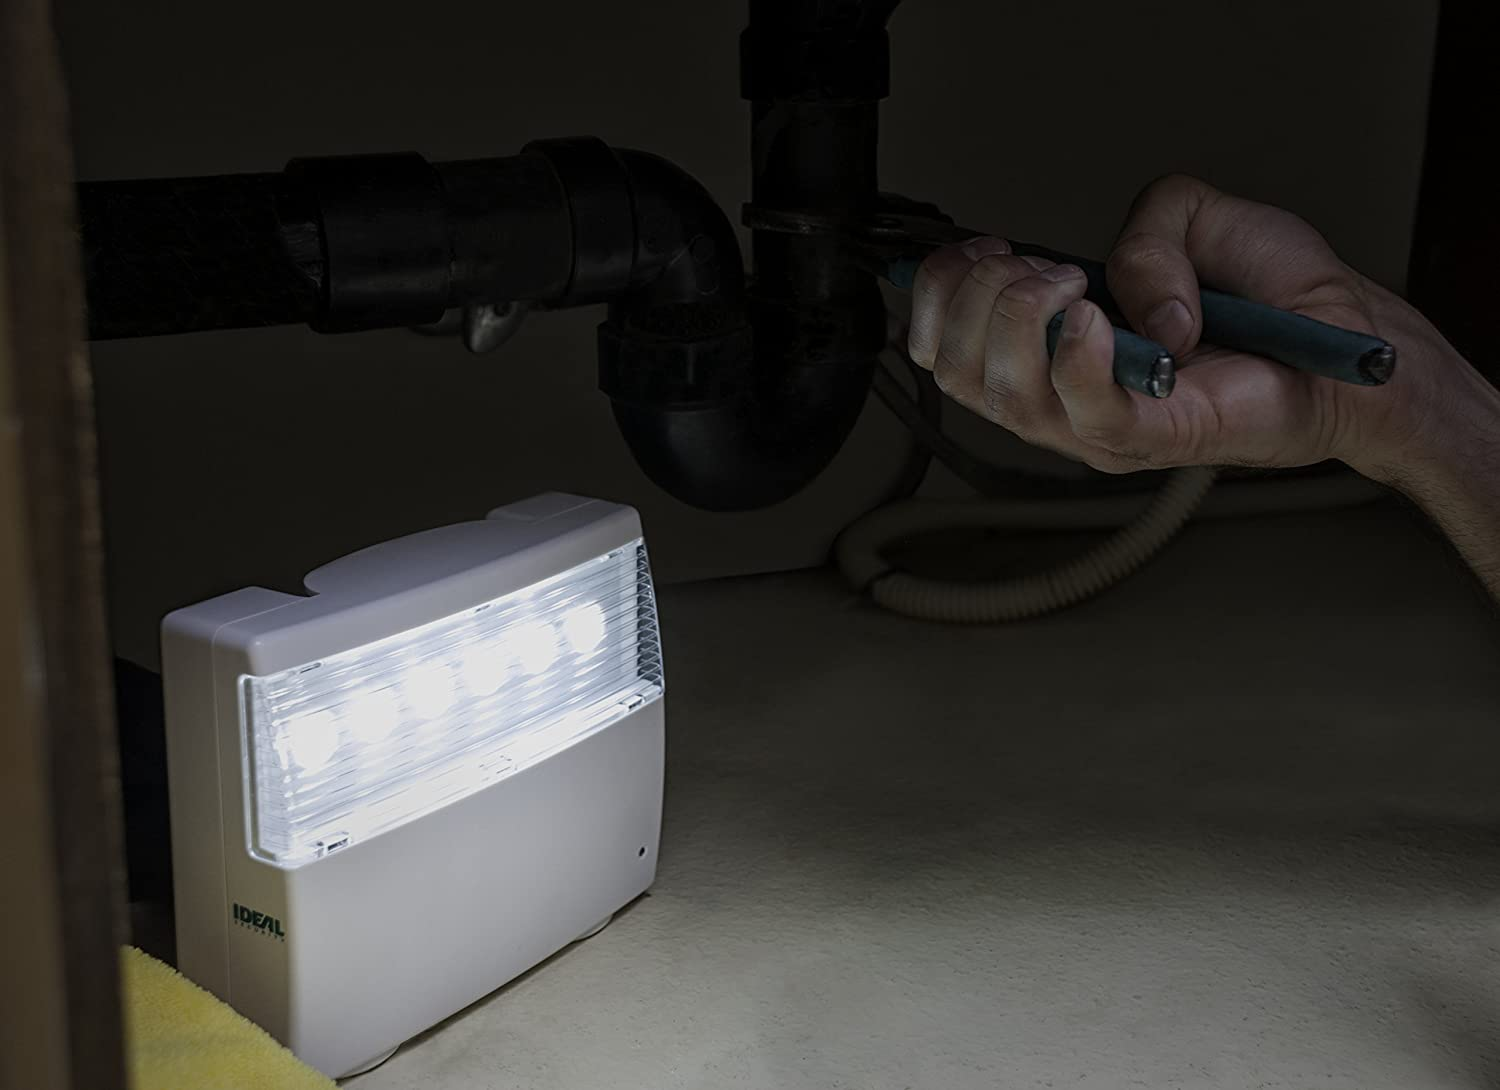 Ideal Security Inc Sk638 Home Emergency Power Failure White 120 Fully Automatic Light Lumens Led Up To 16 Hours Of No Wiring